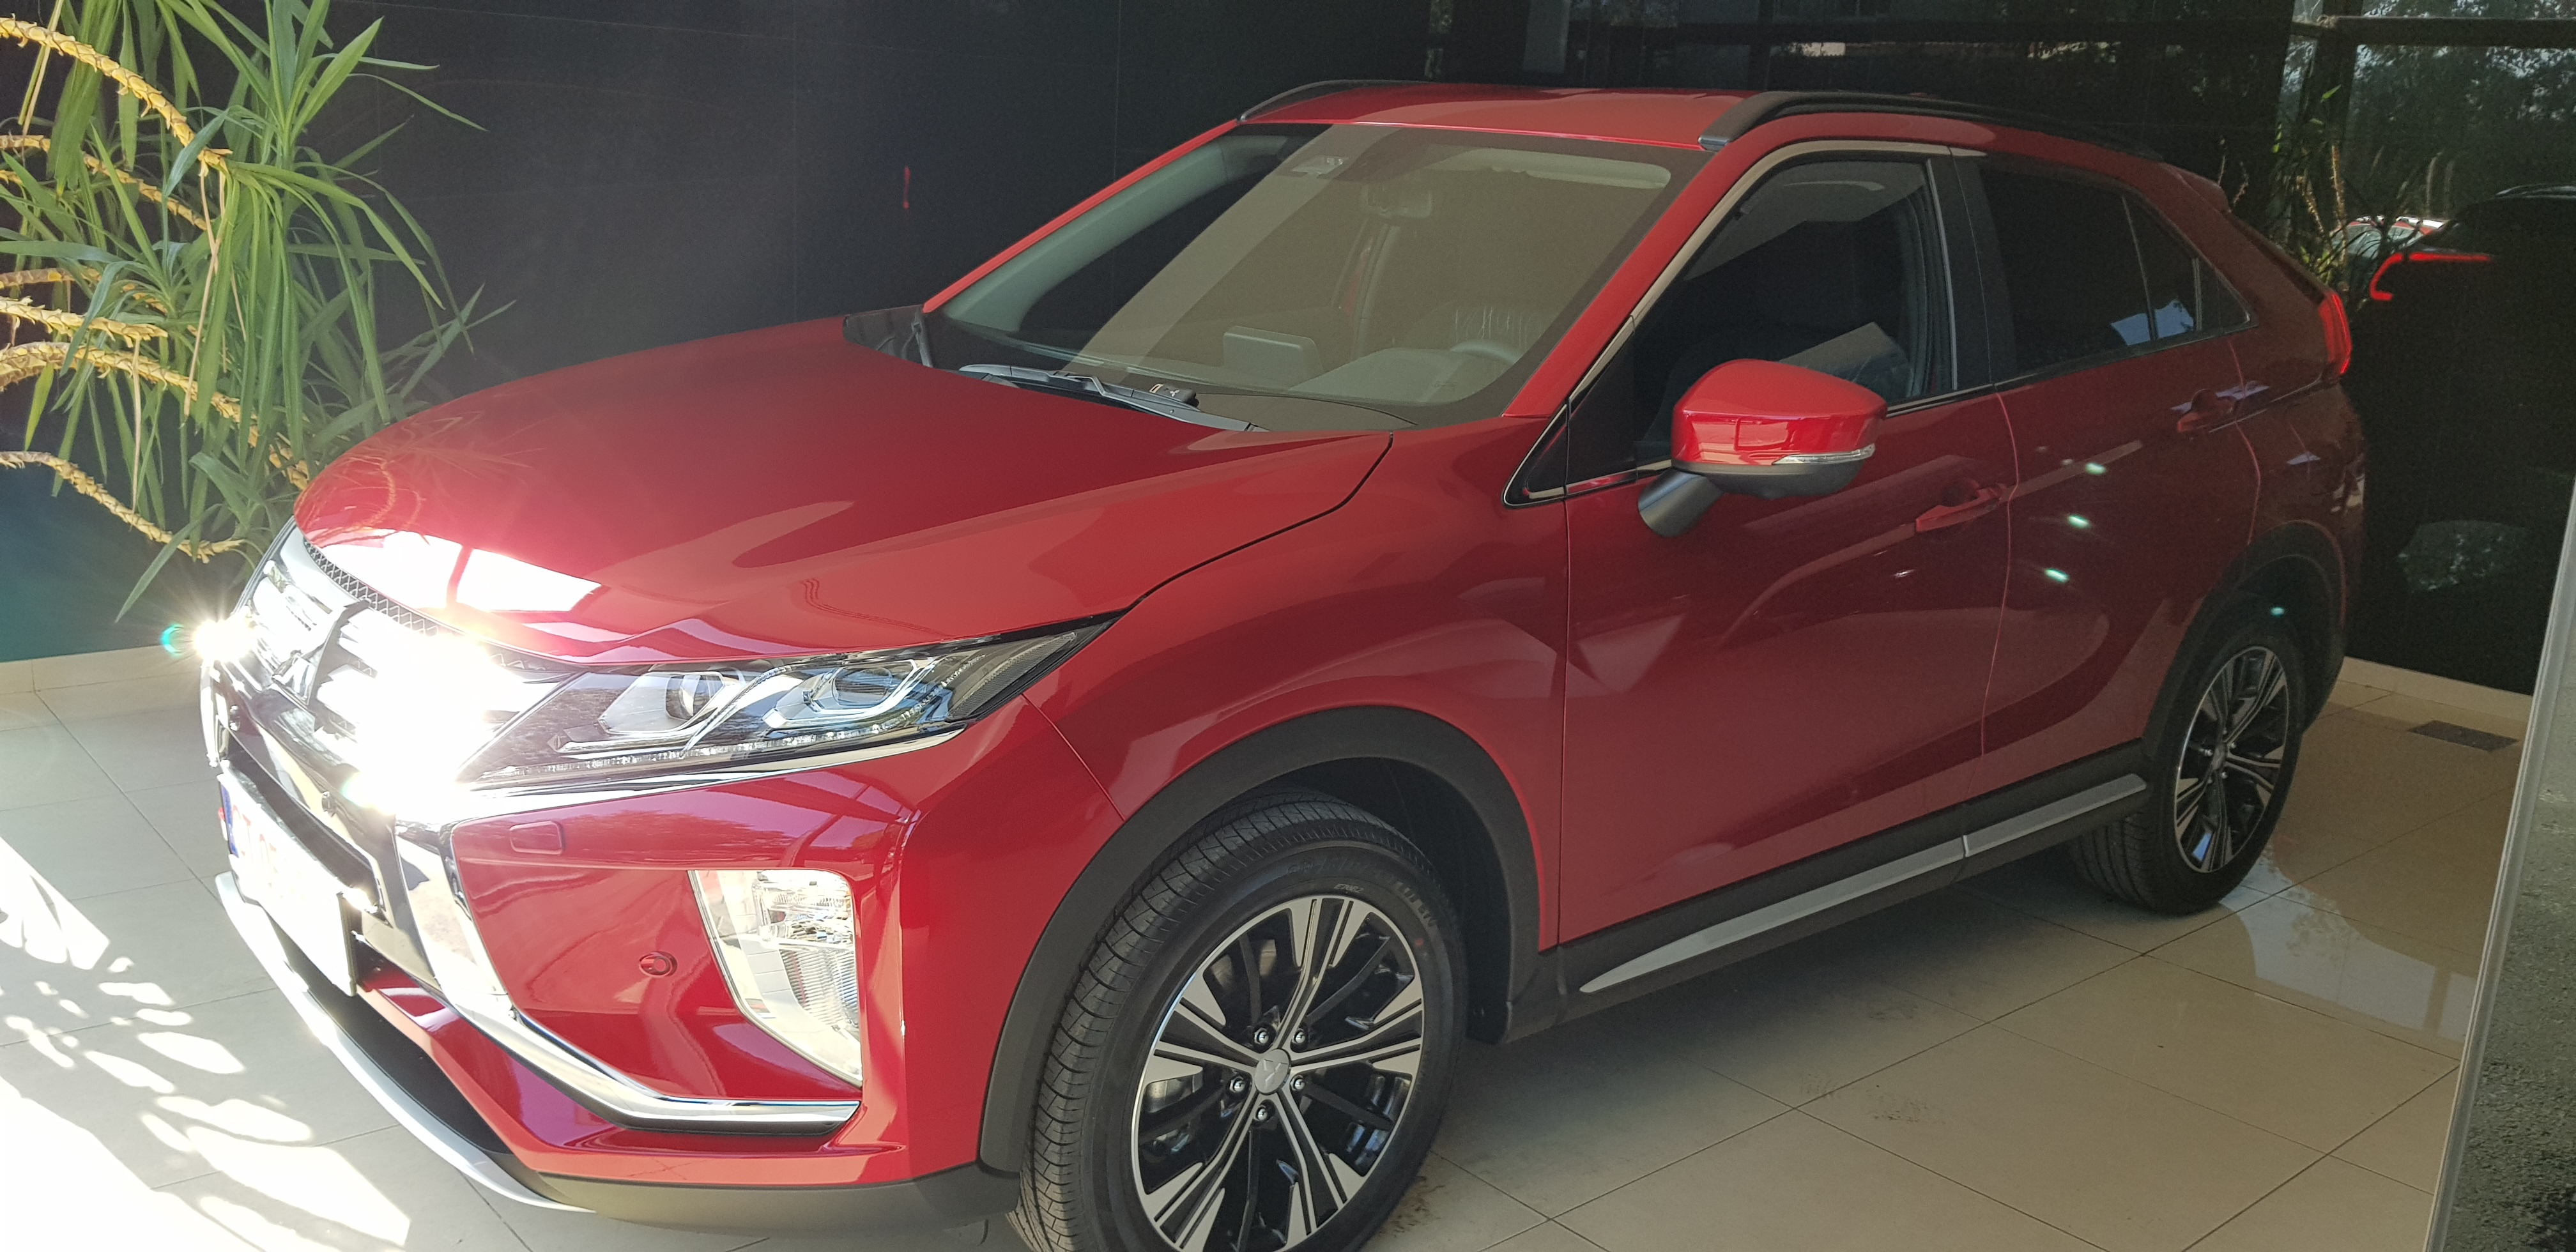 Oferta Eclipse Cross : Mitsubishi ECLIPSE CROSS INVITE+